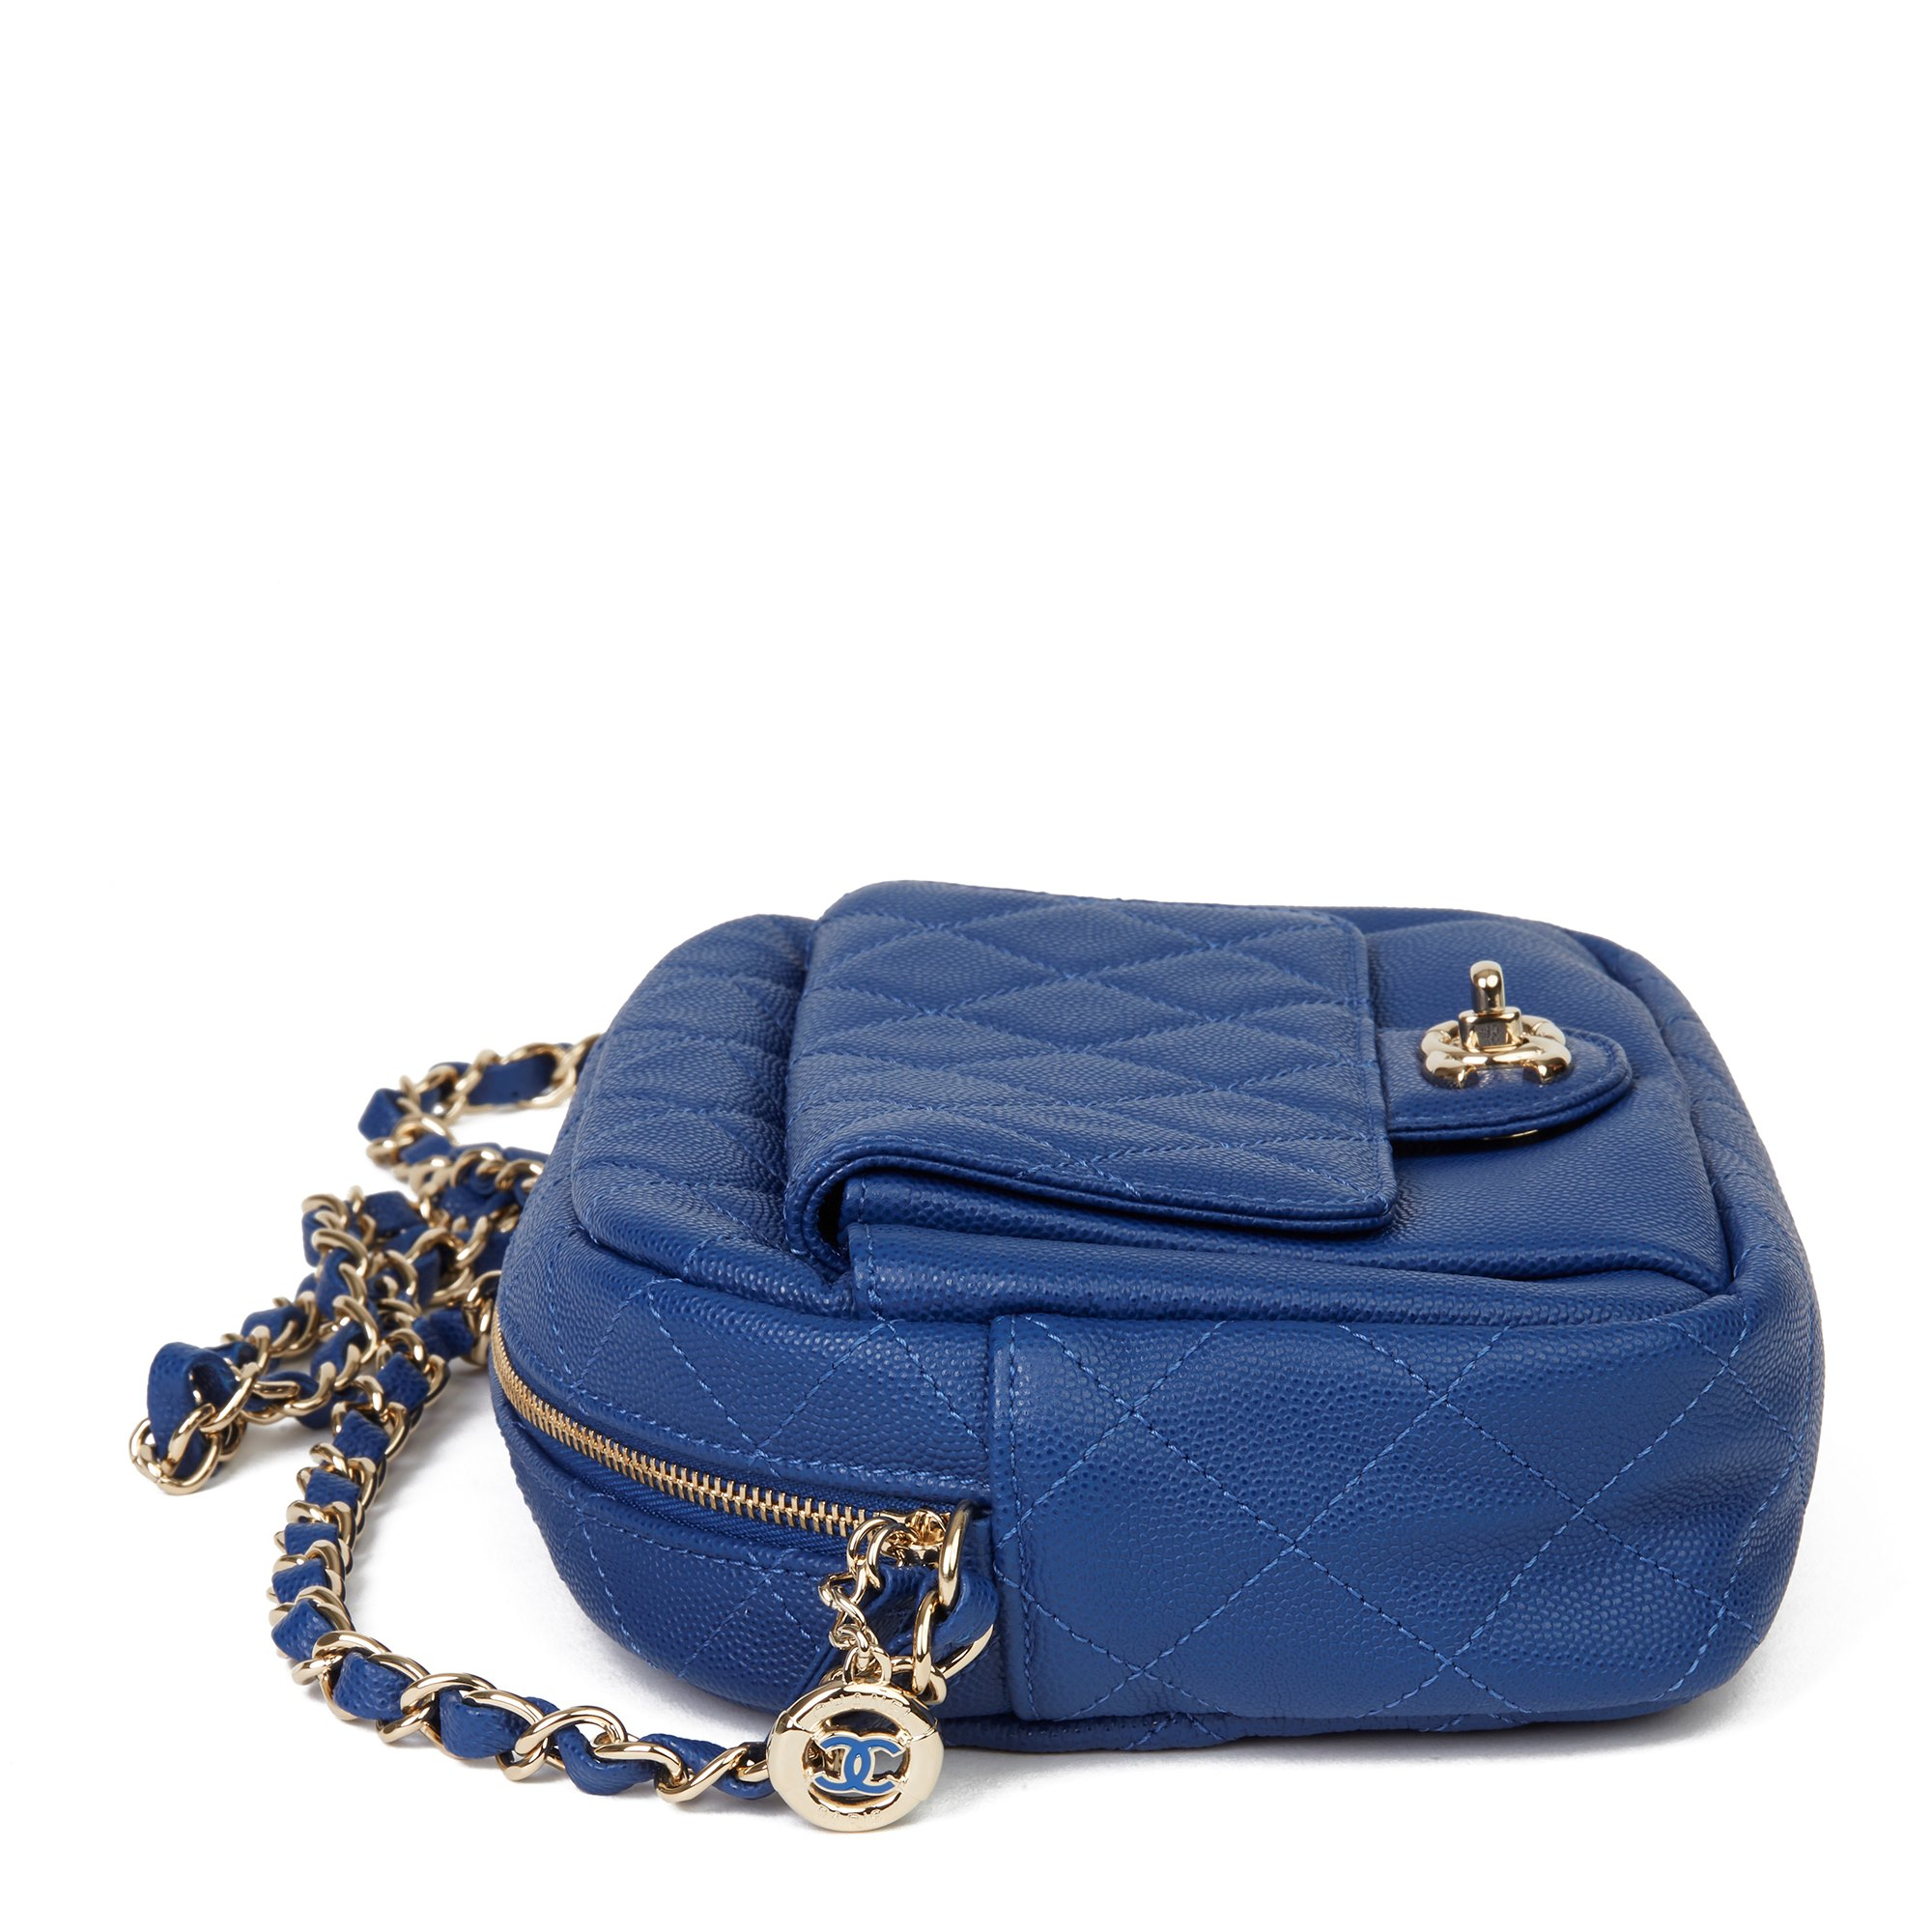 Chanel Electric Blue Quilted Caviar Leather Medium CC Day Camera Case